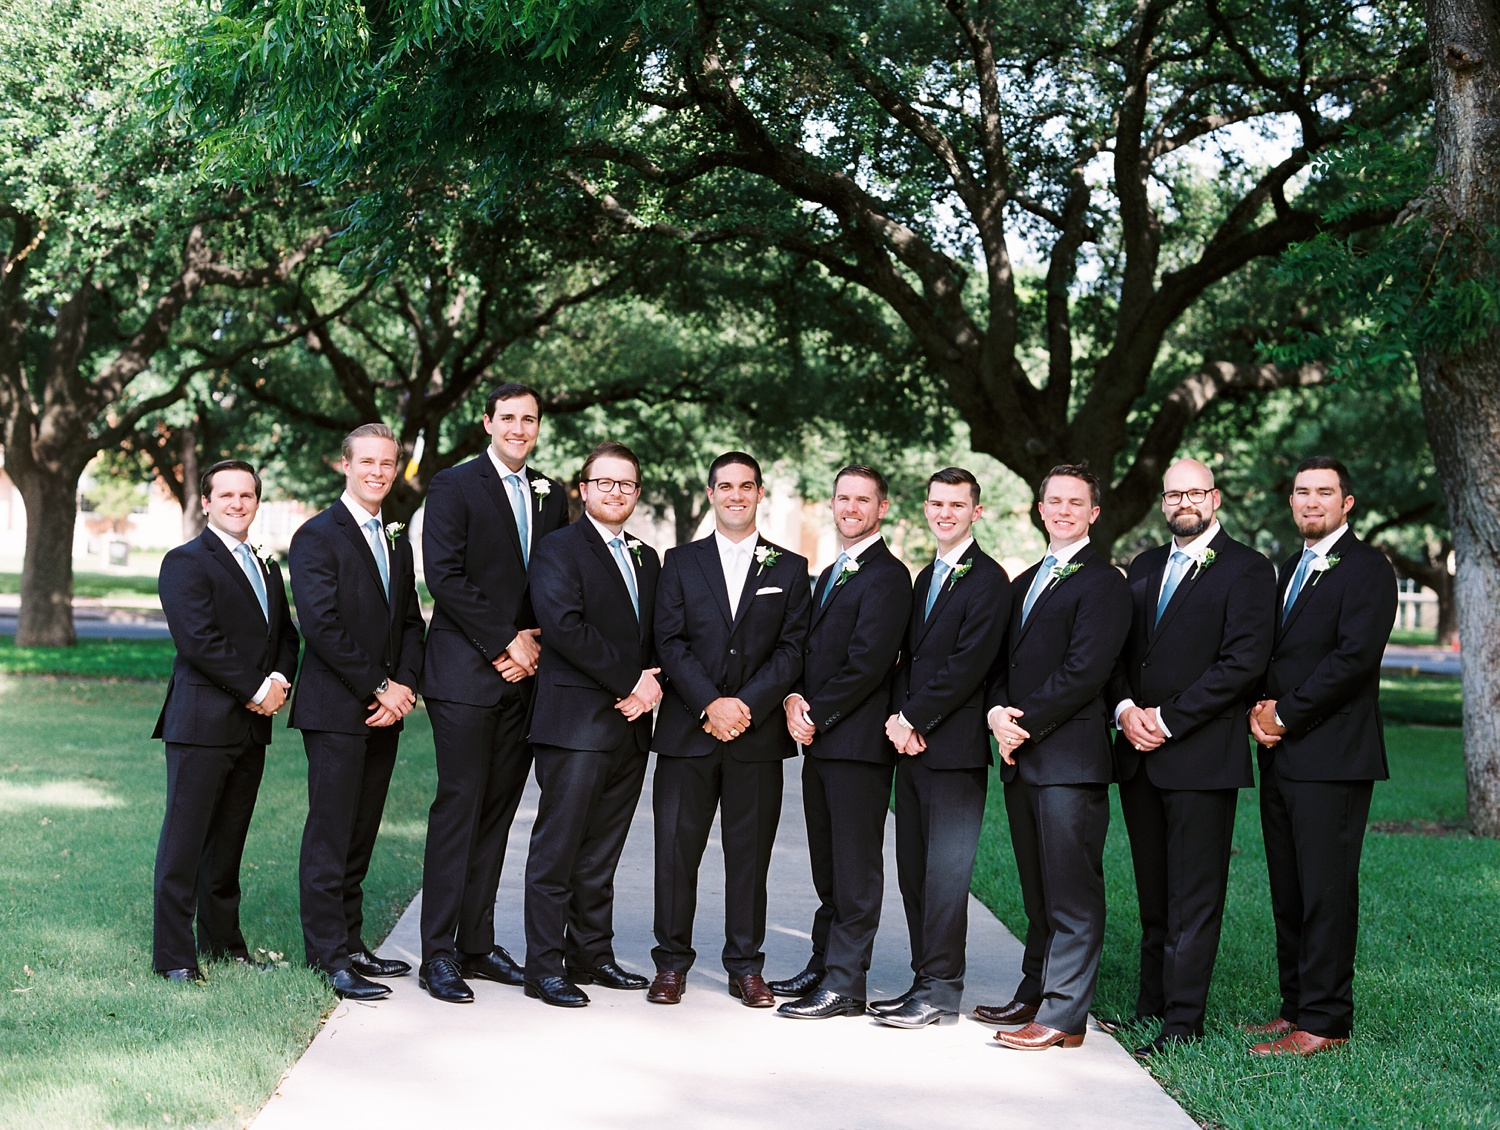 Hill Country Wedding Austin Texas Wedding Photographer_0079.jpg